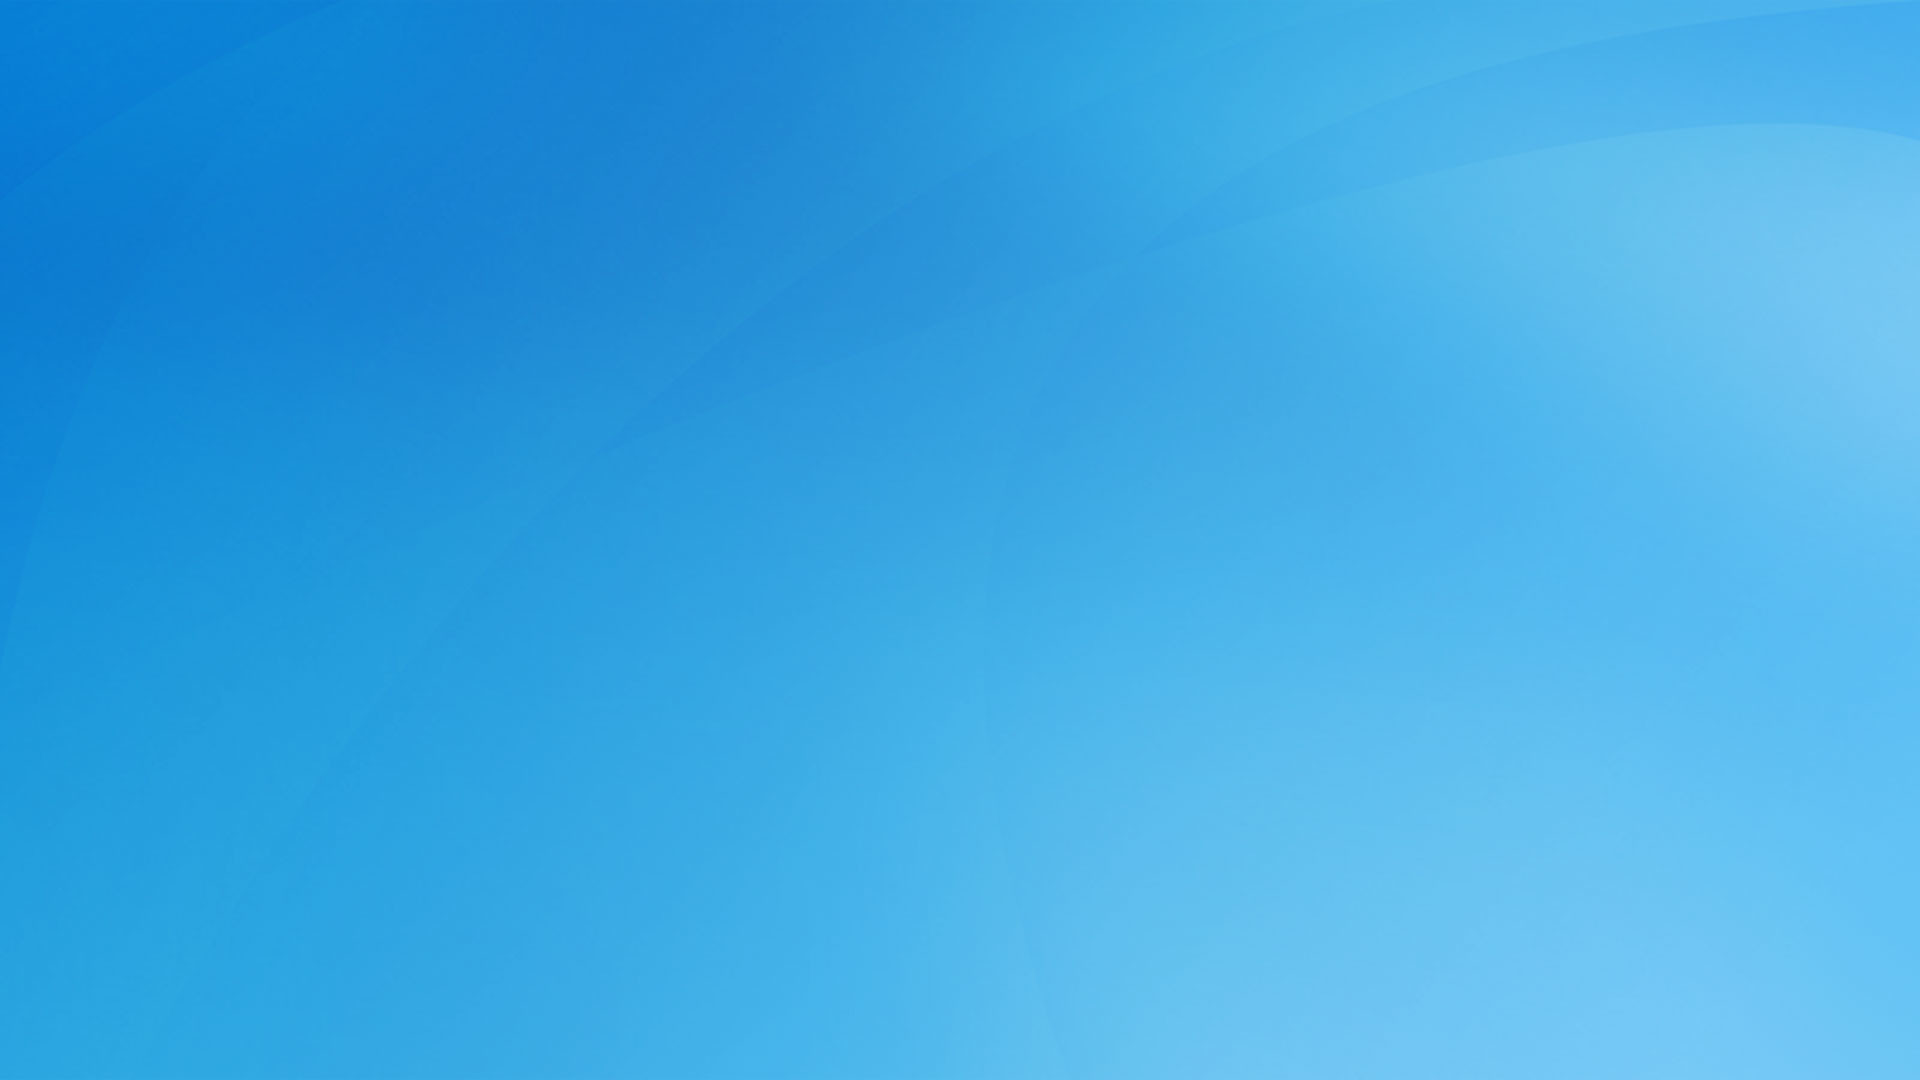 Res: 1920x1080, background-website-light-blue-wallpapers-background-2